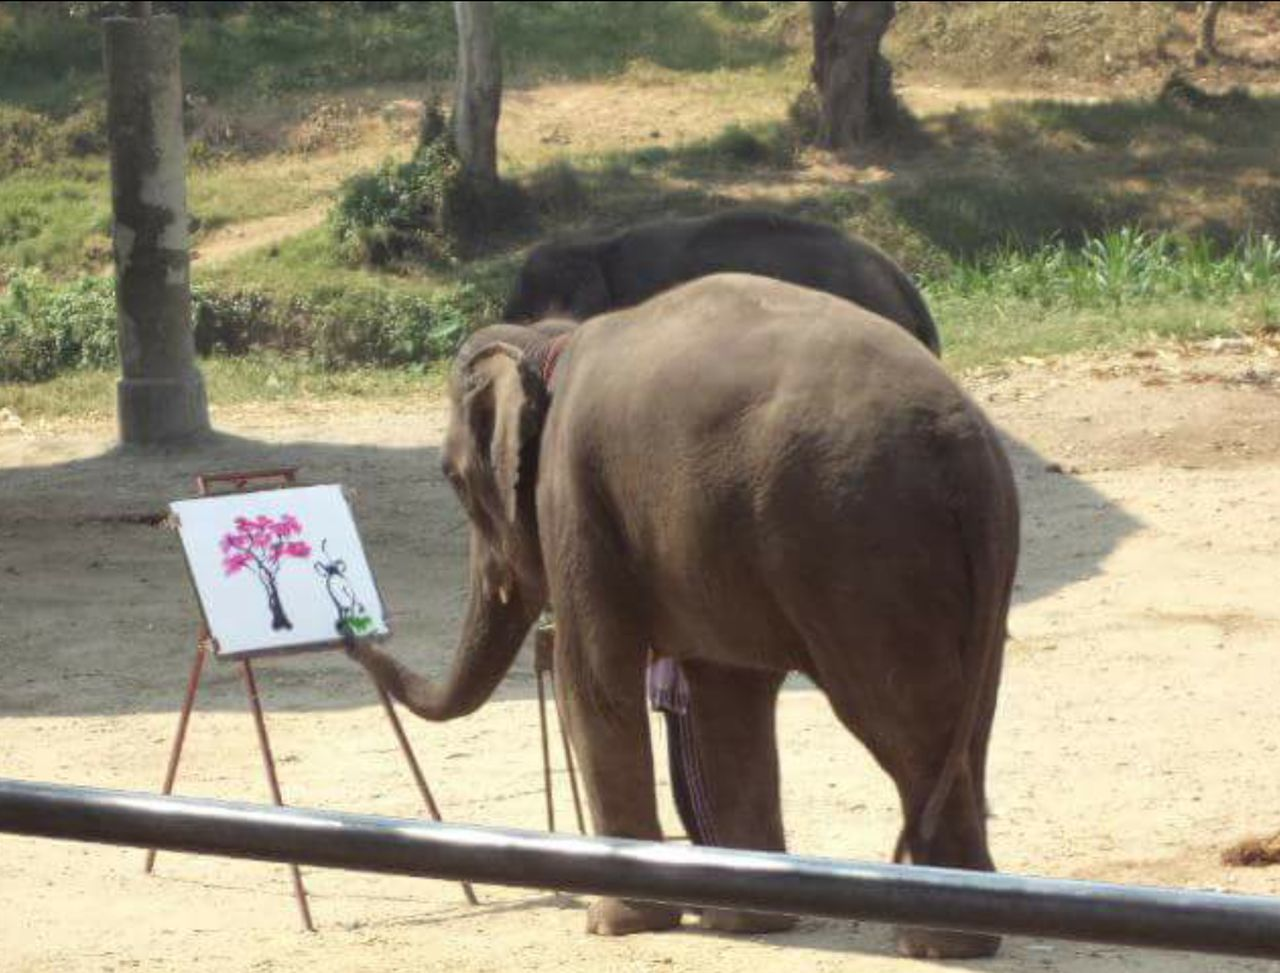 animal themes, day, elephant, one animal, no people, outdoors, mammal, domestic animals, nature, tree